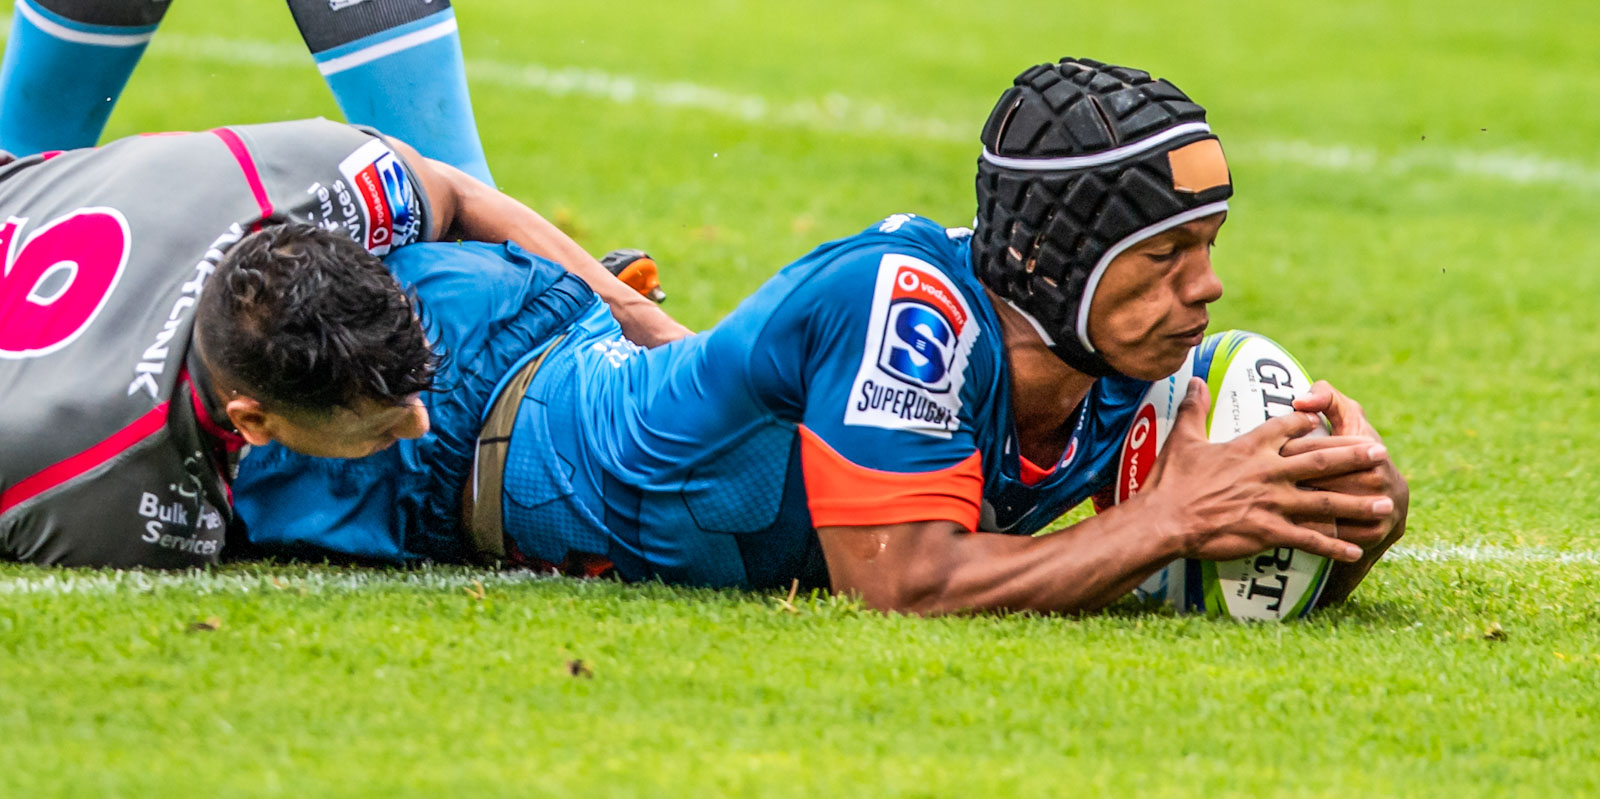 Kurt-Lee Arendse scored the first try of the match.